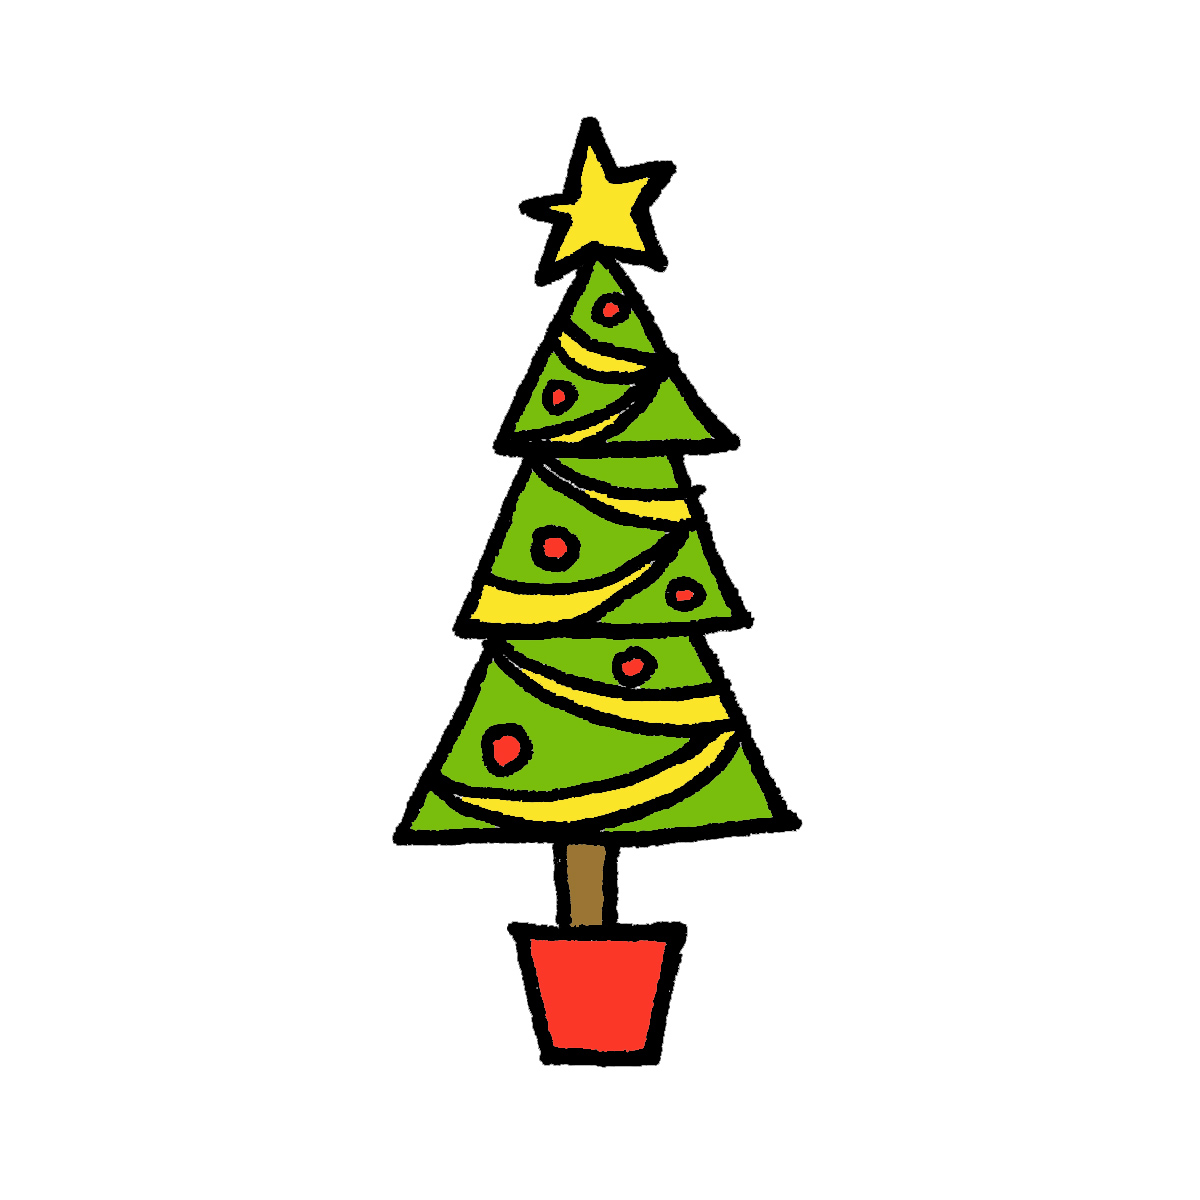 Tall christmas tree clipart svg black and white download How to Draw a Christmas Tree: 4 Cartoon Tutorials svg black and white download